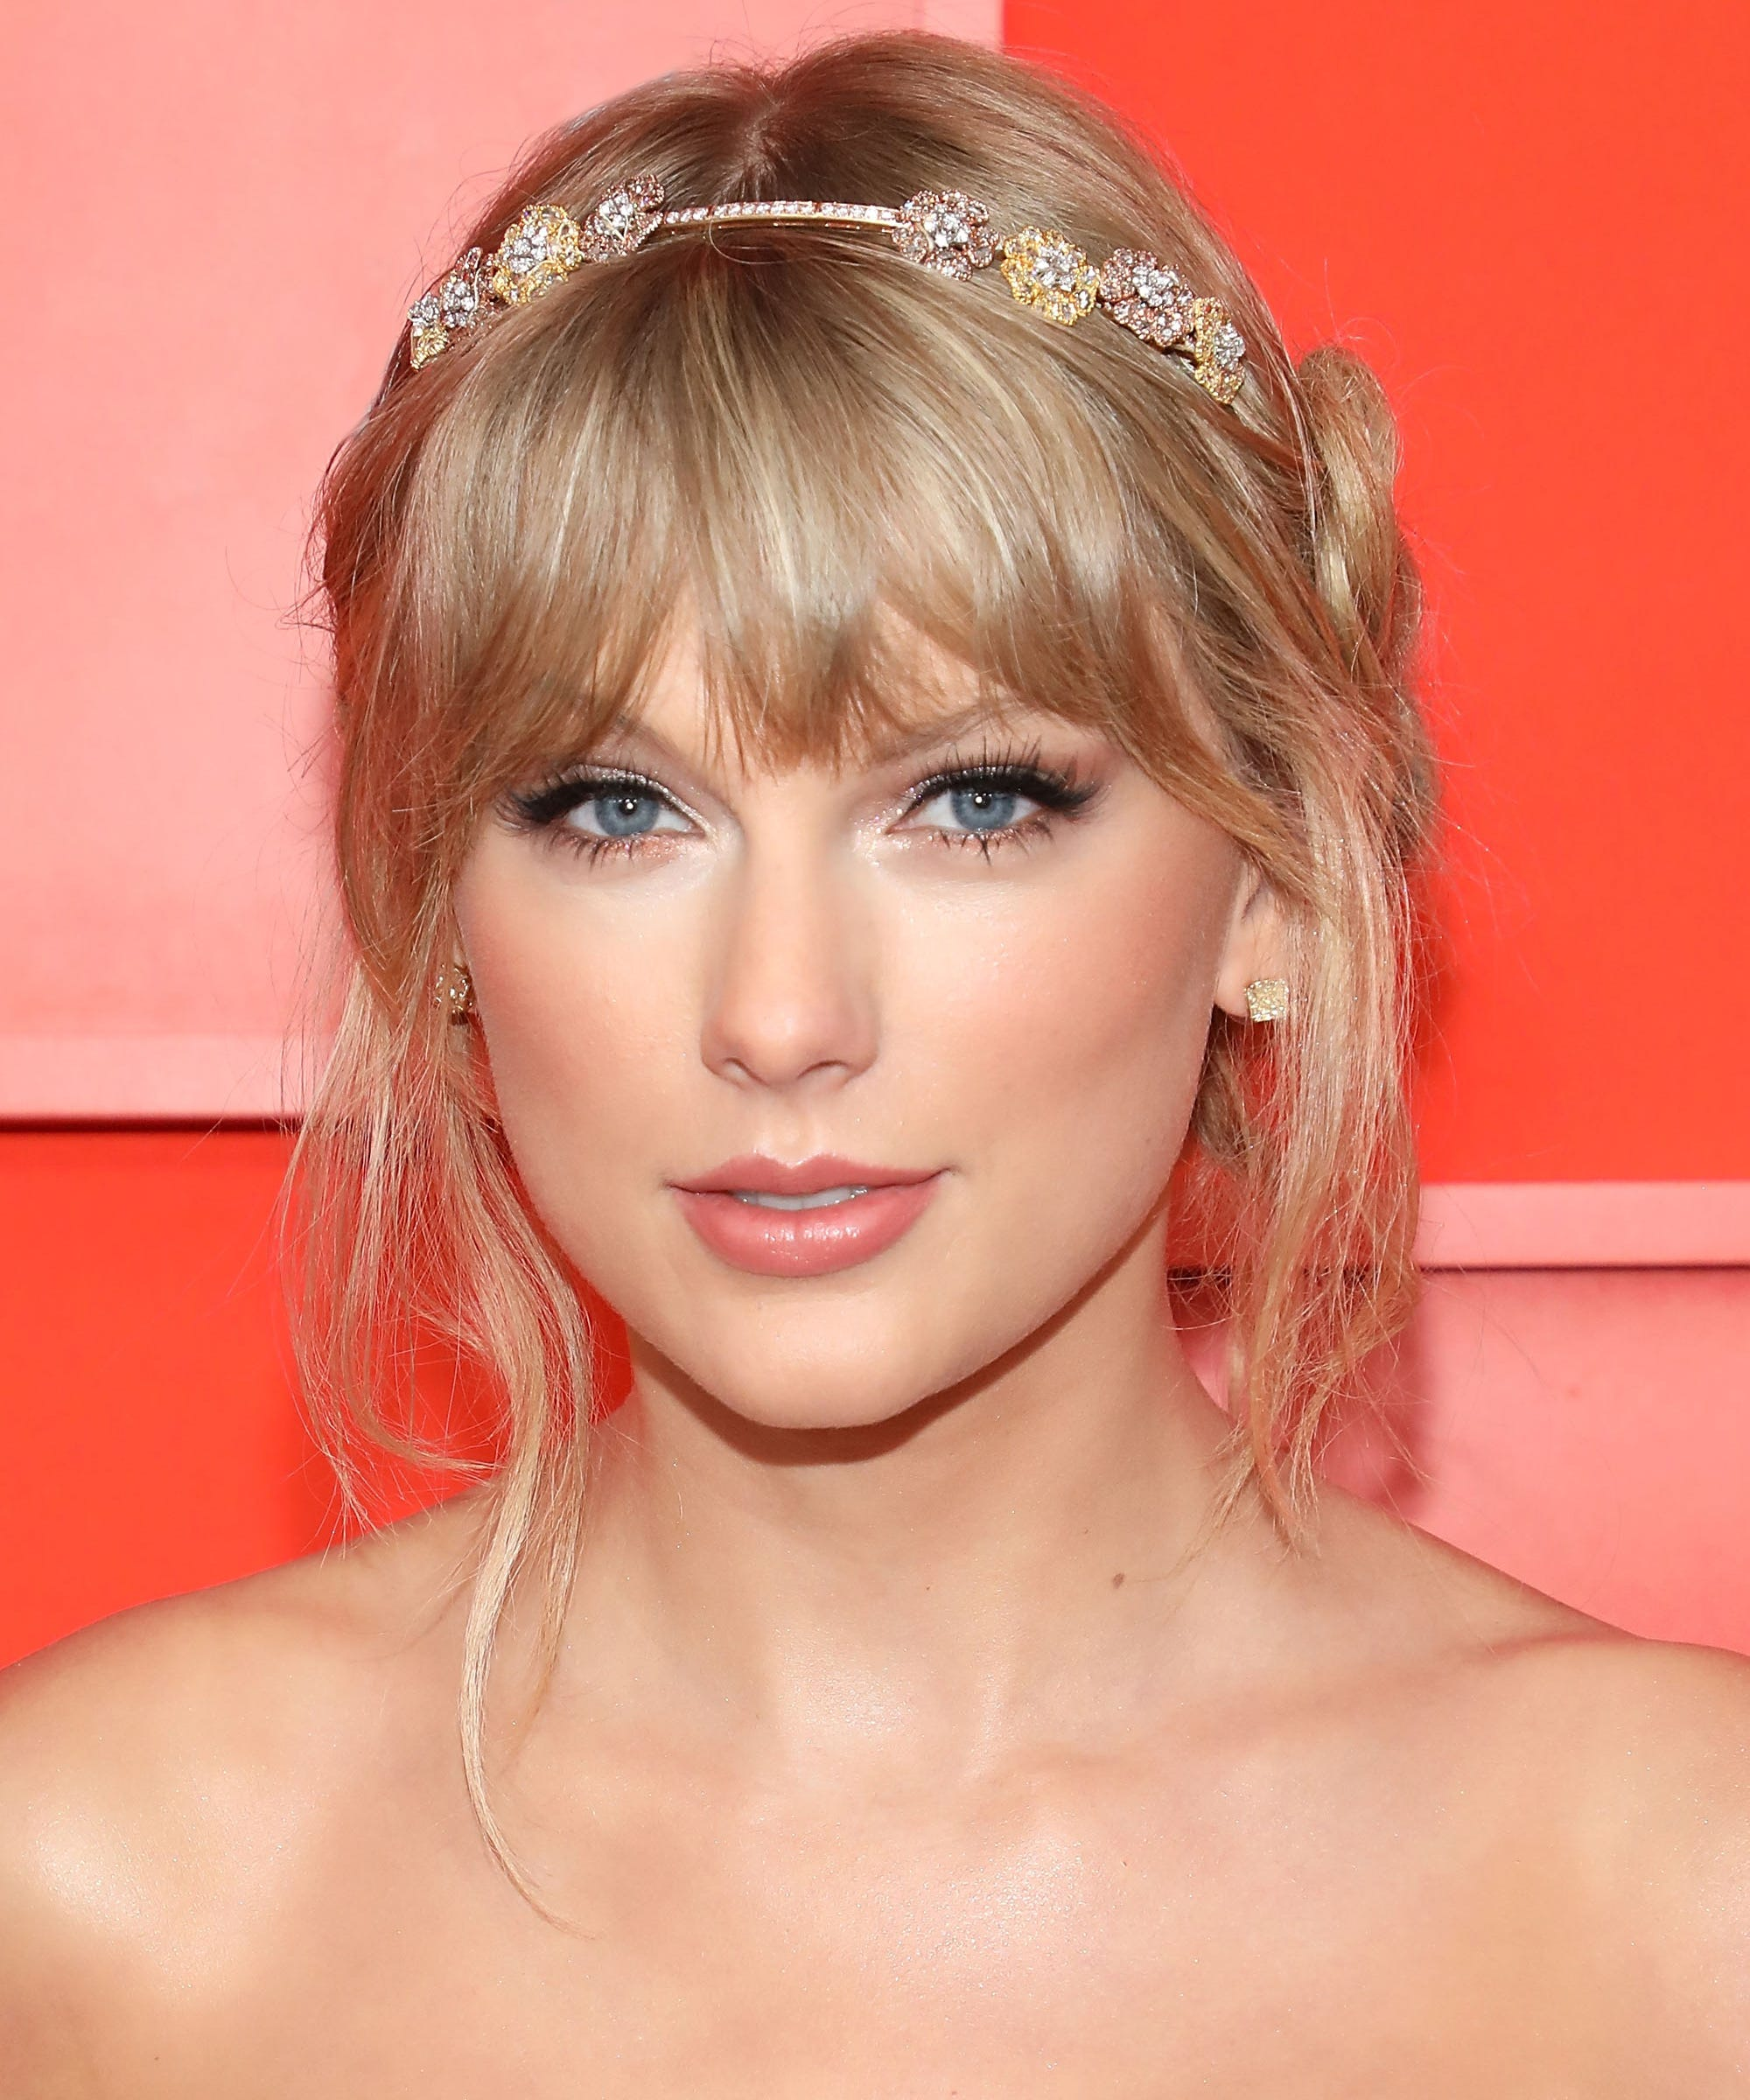 Taylor Swift Hair Has Changed So Much Curls To Pink